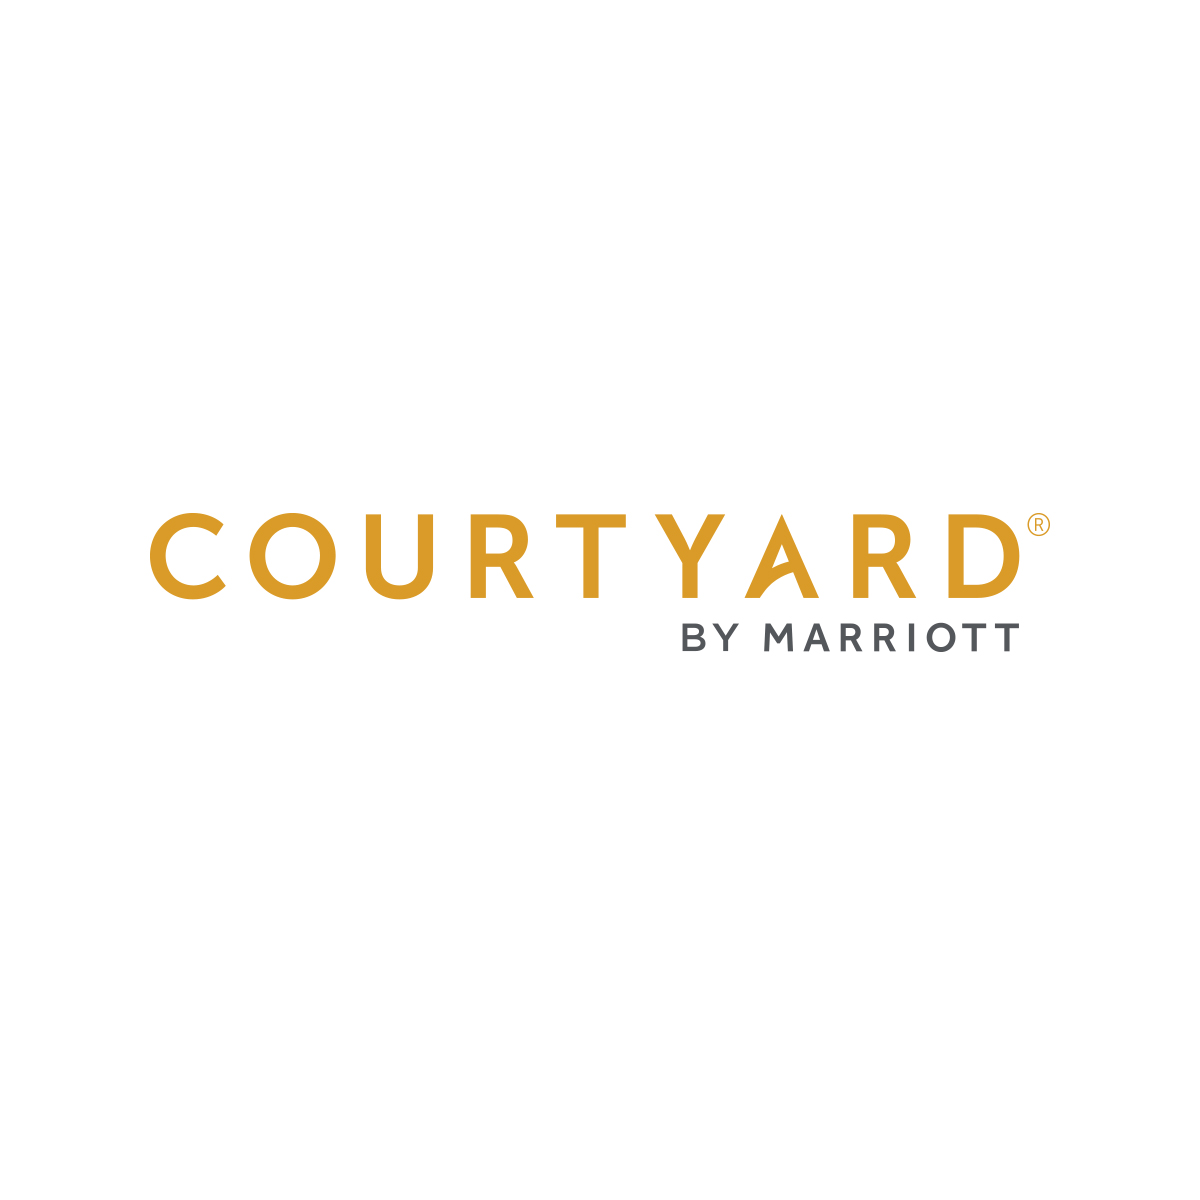 Courtyard Marriott 2019 SMCB Logo.jpg